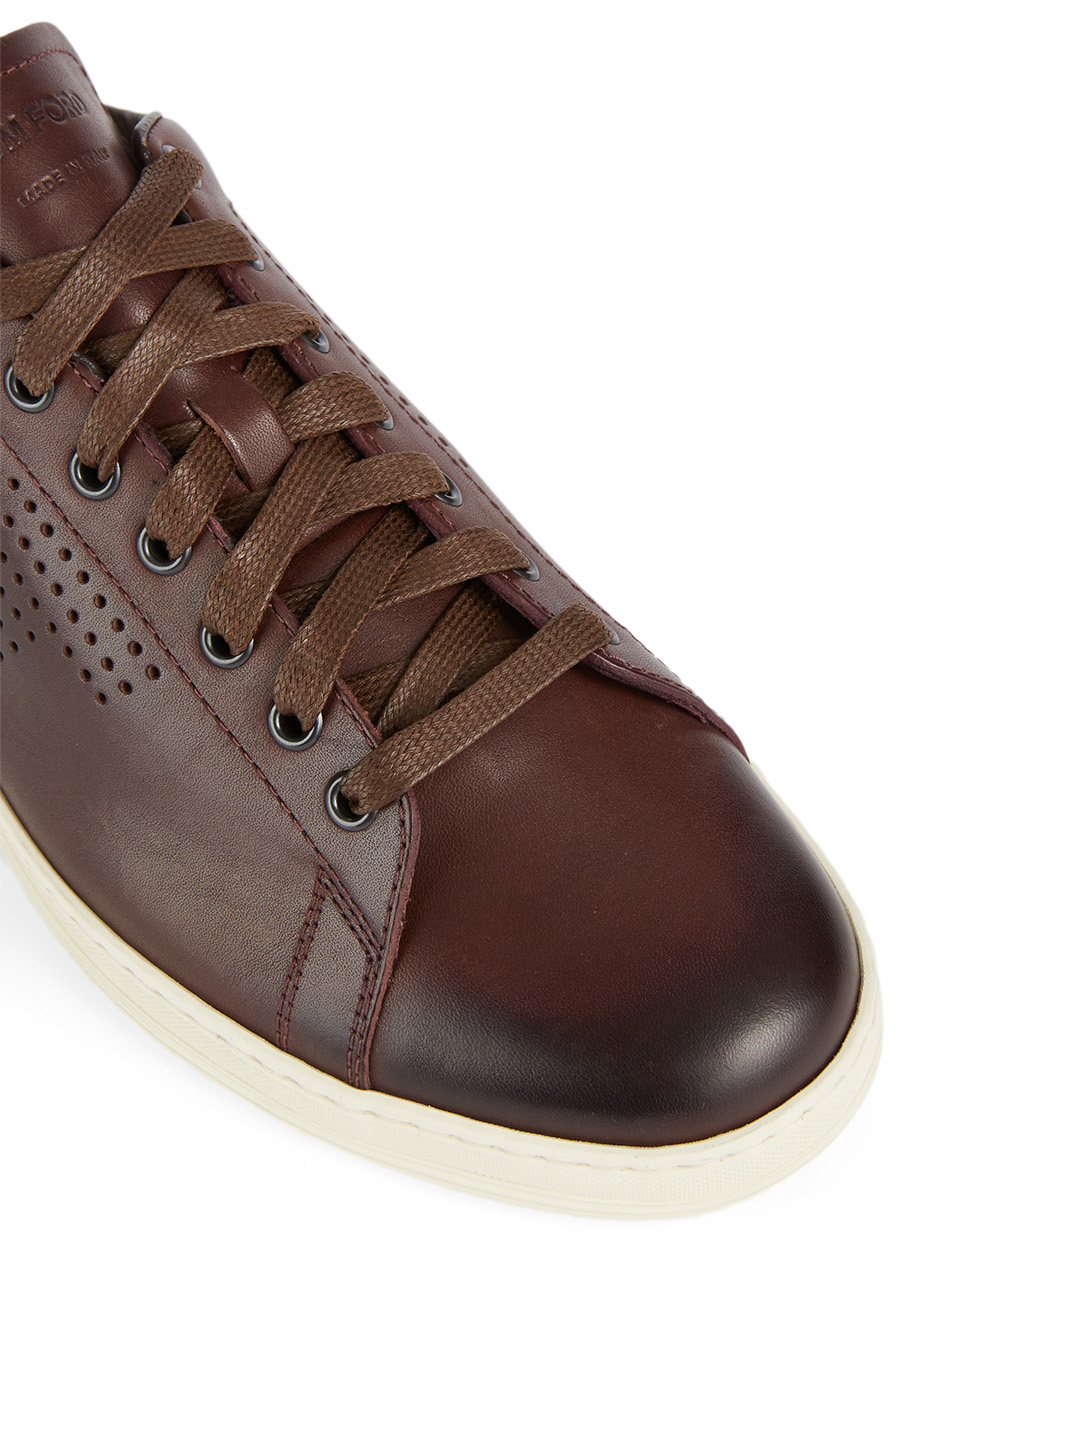 TOM FORD Warwick Leather Sneakers Men's Red